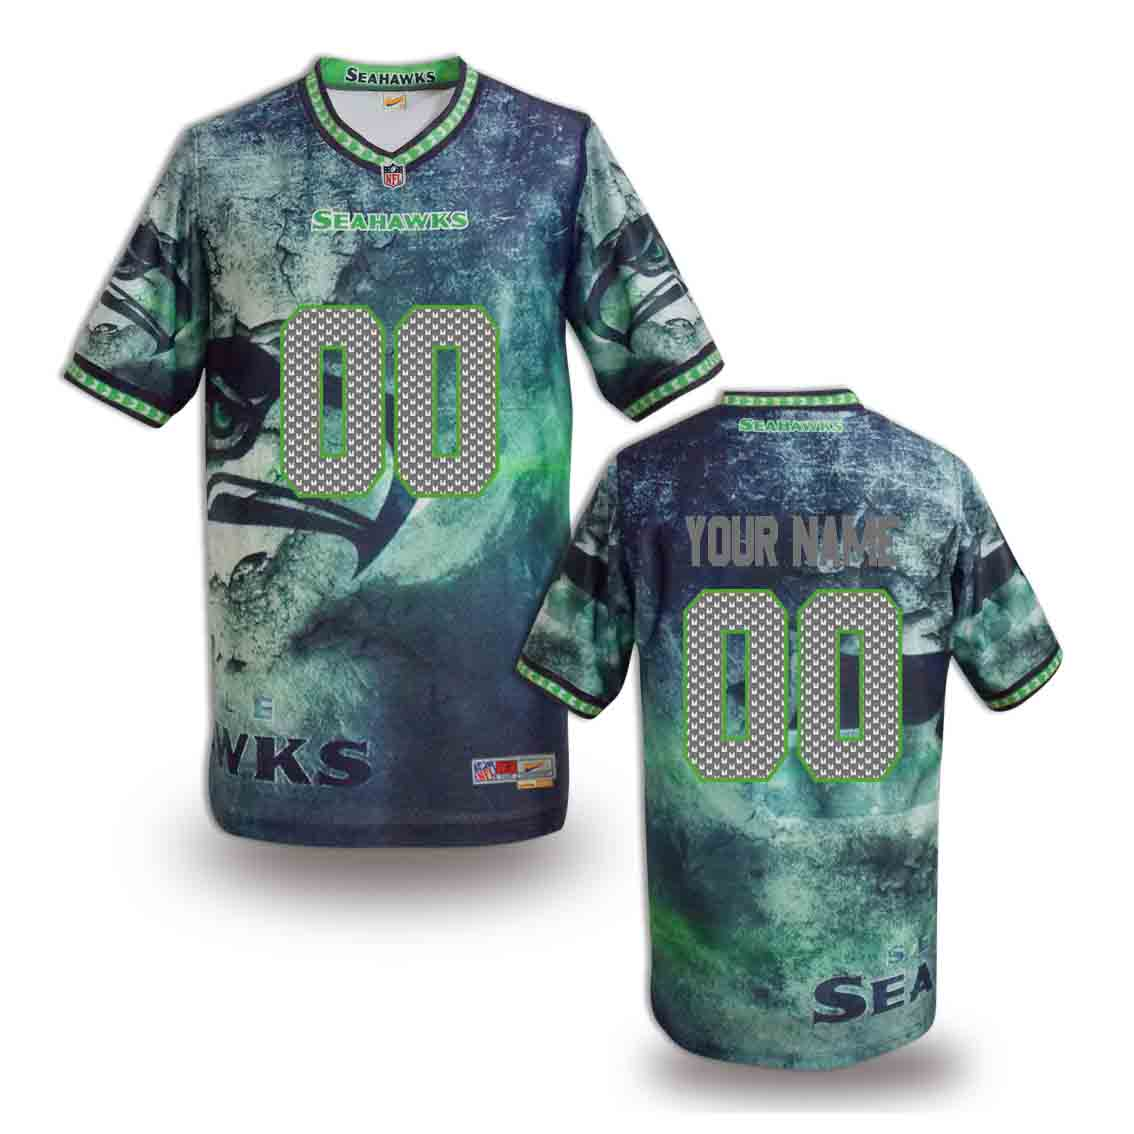 Nike Seahawks Customized Fashion Stitched Jerseys13